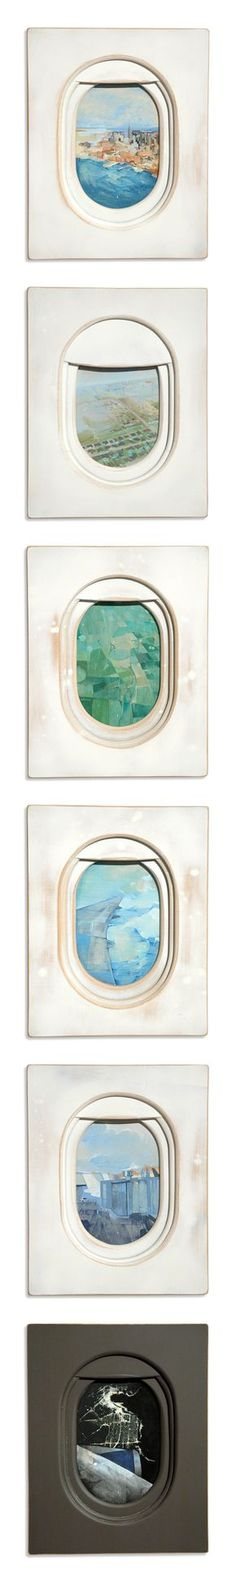 Airplane Window paintings by Jim Darling. Aerial views of landscapes from airplane windows.